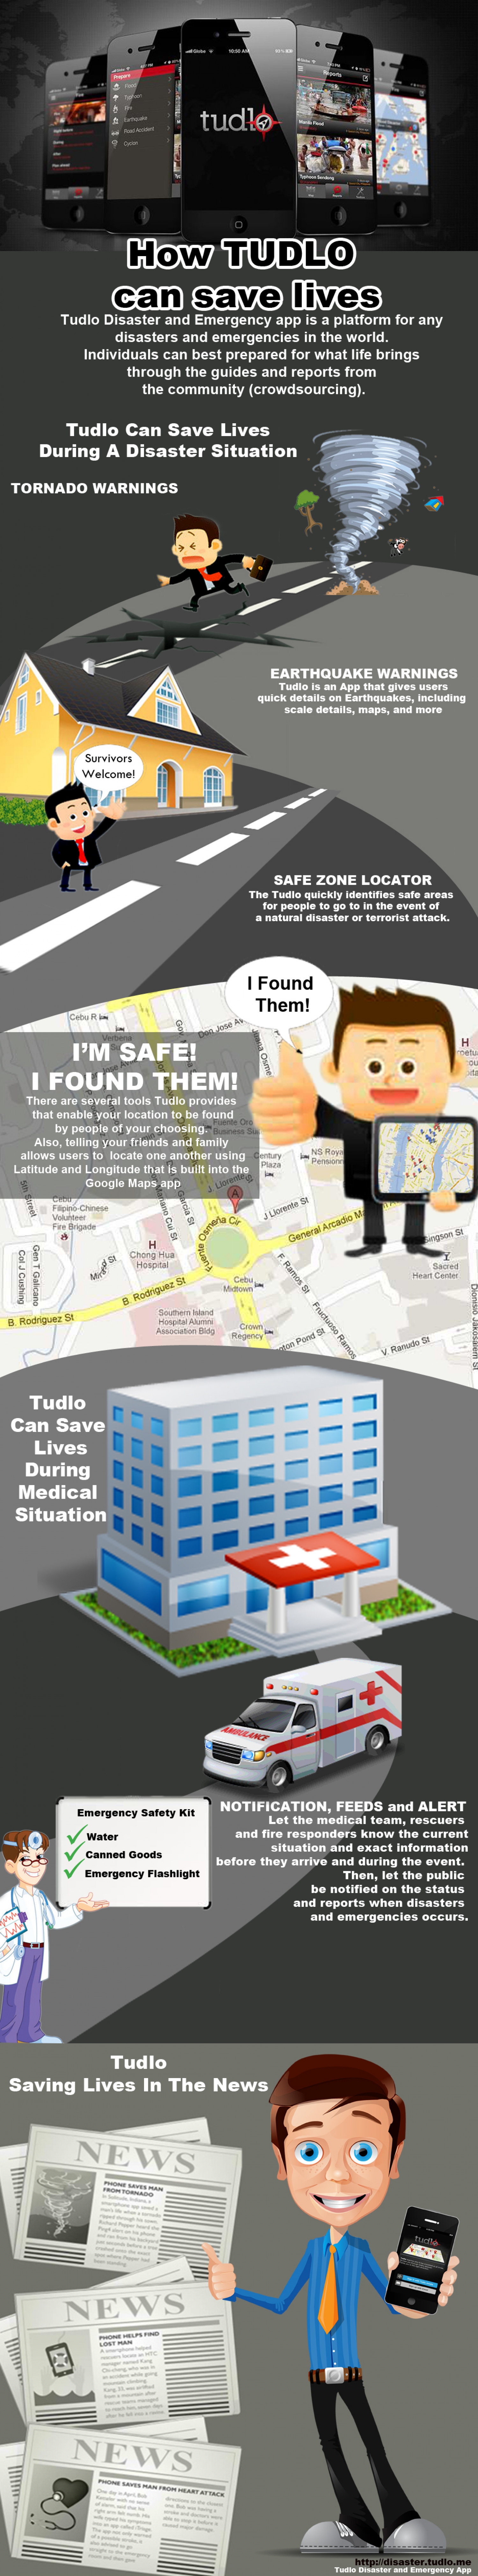 How Tudlo Can Save Lives Infographic